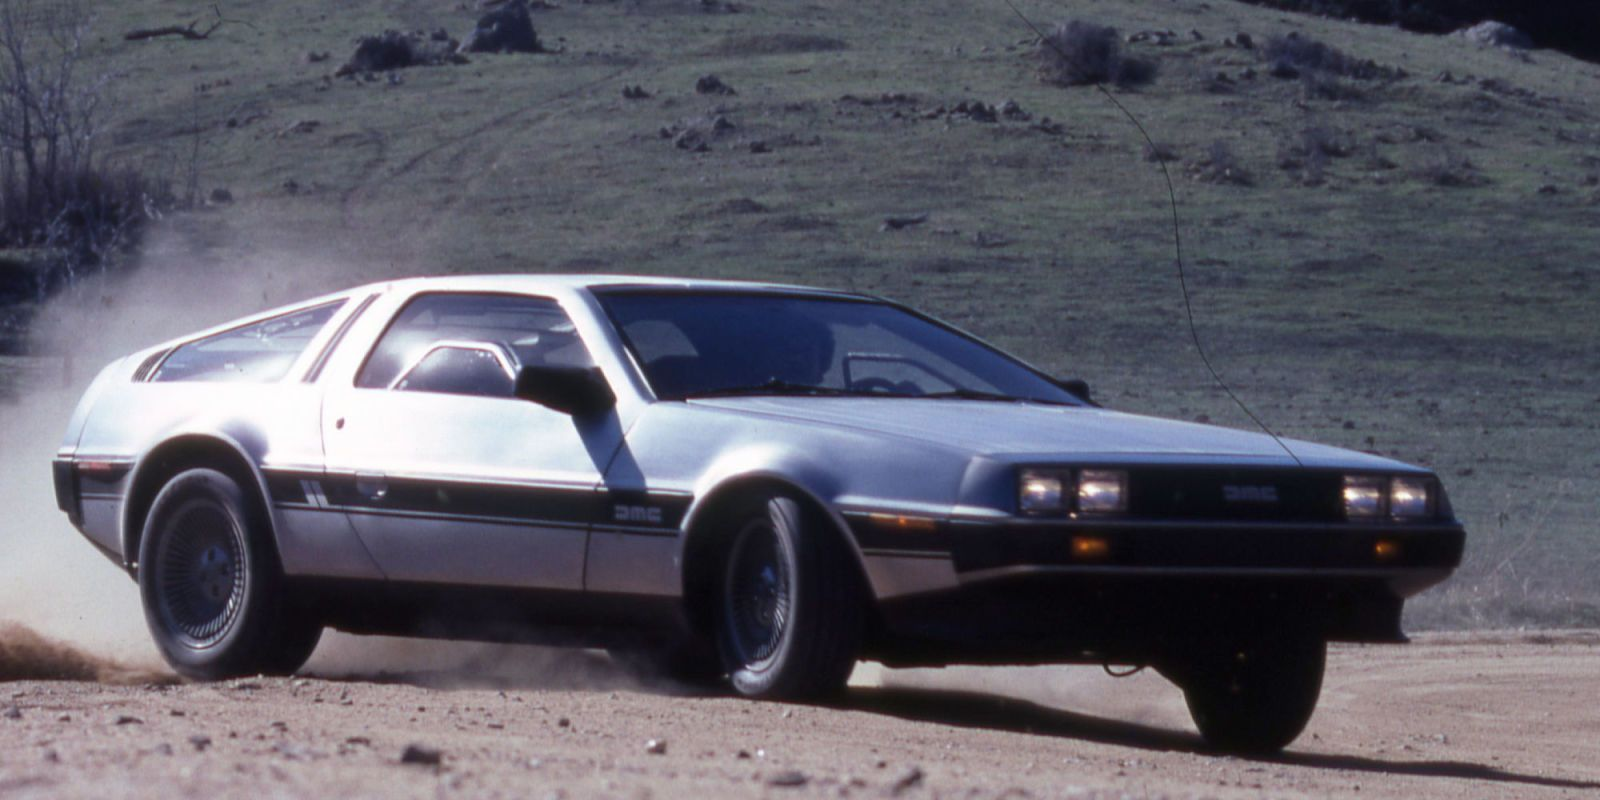 Man Arrested for Driving a DeLorean 88 MPH Swears He's Not a Time Traveler